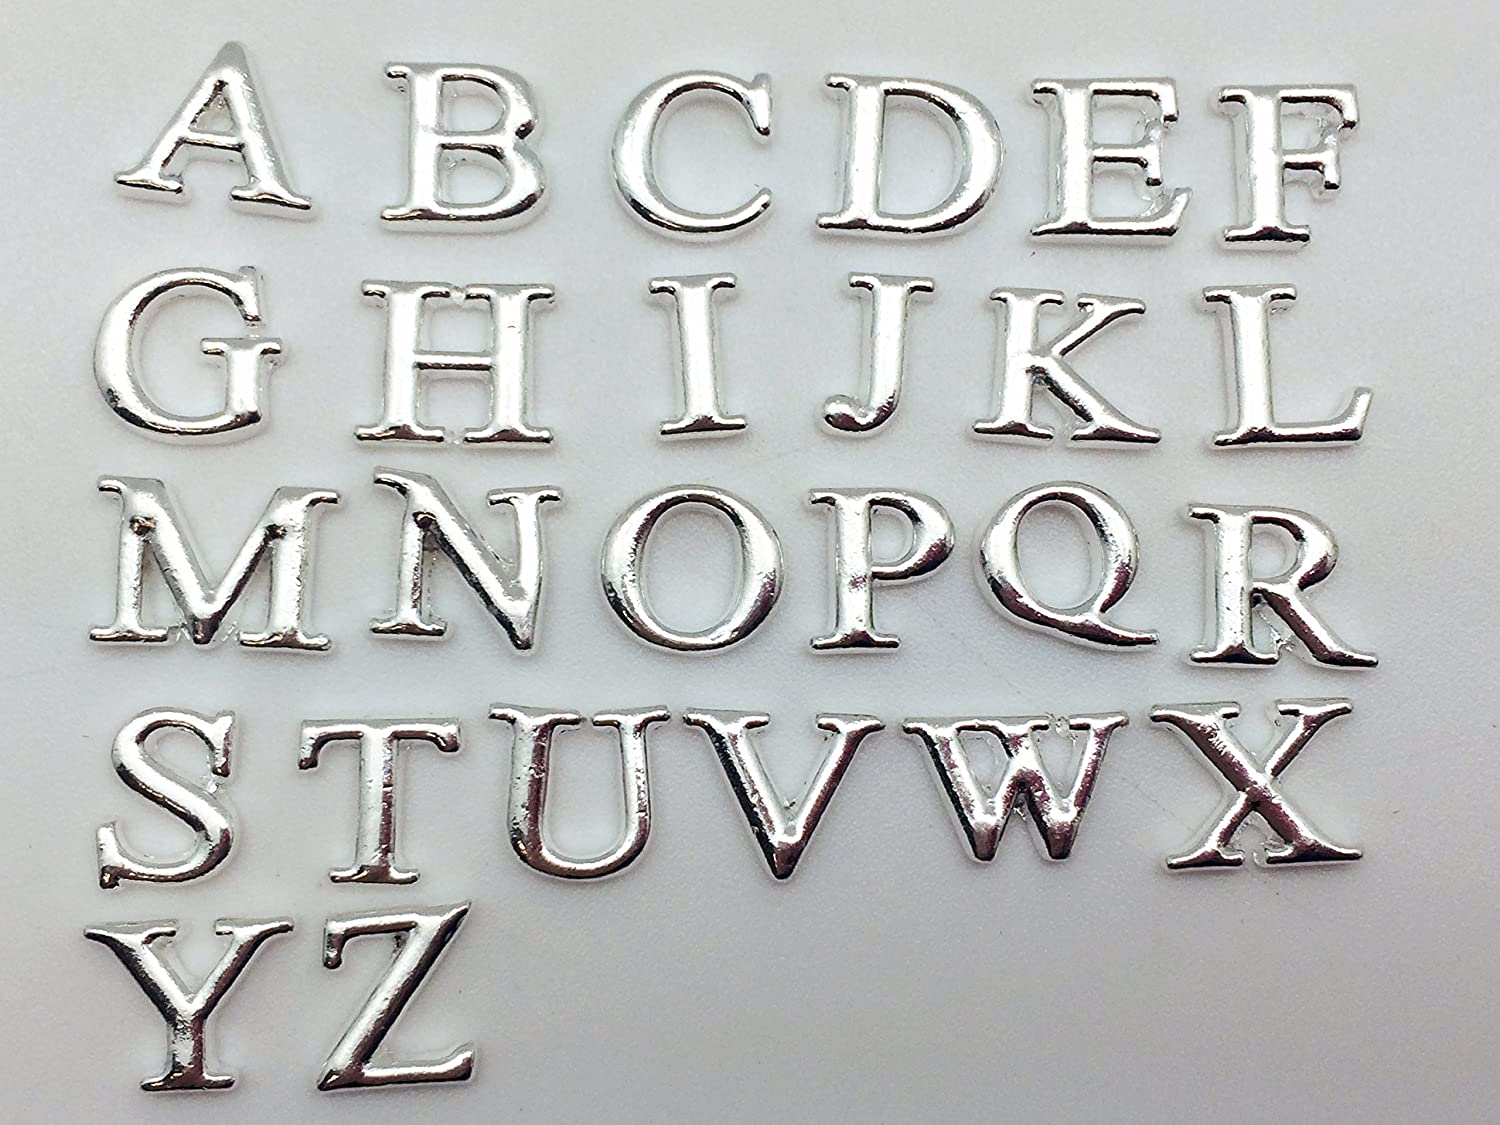 PEPPERLONELY Brand 26PC A-Z Alphabet Letter Silver Alloy Metal Floating Charms for Floating Lockets